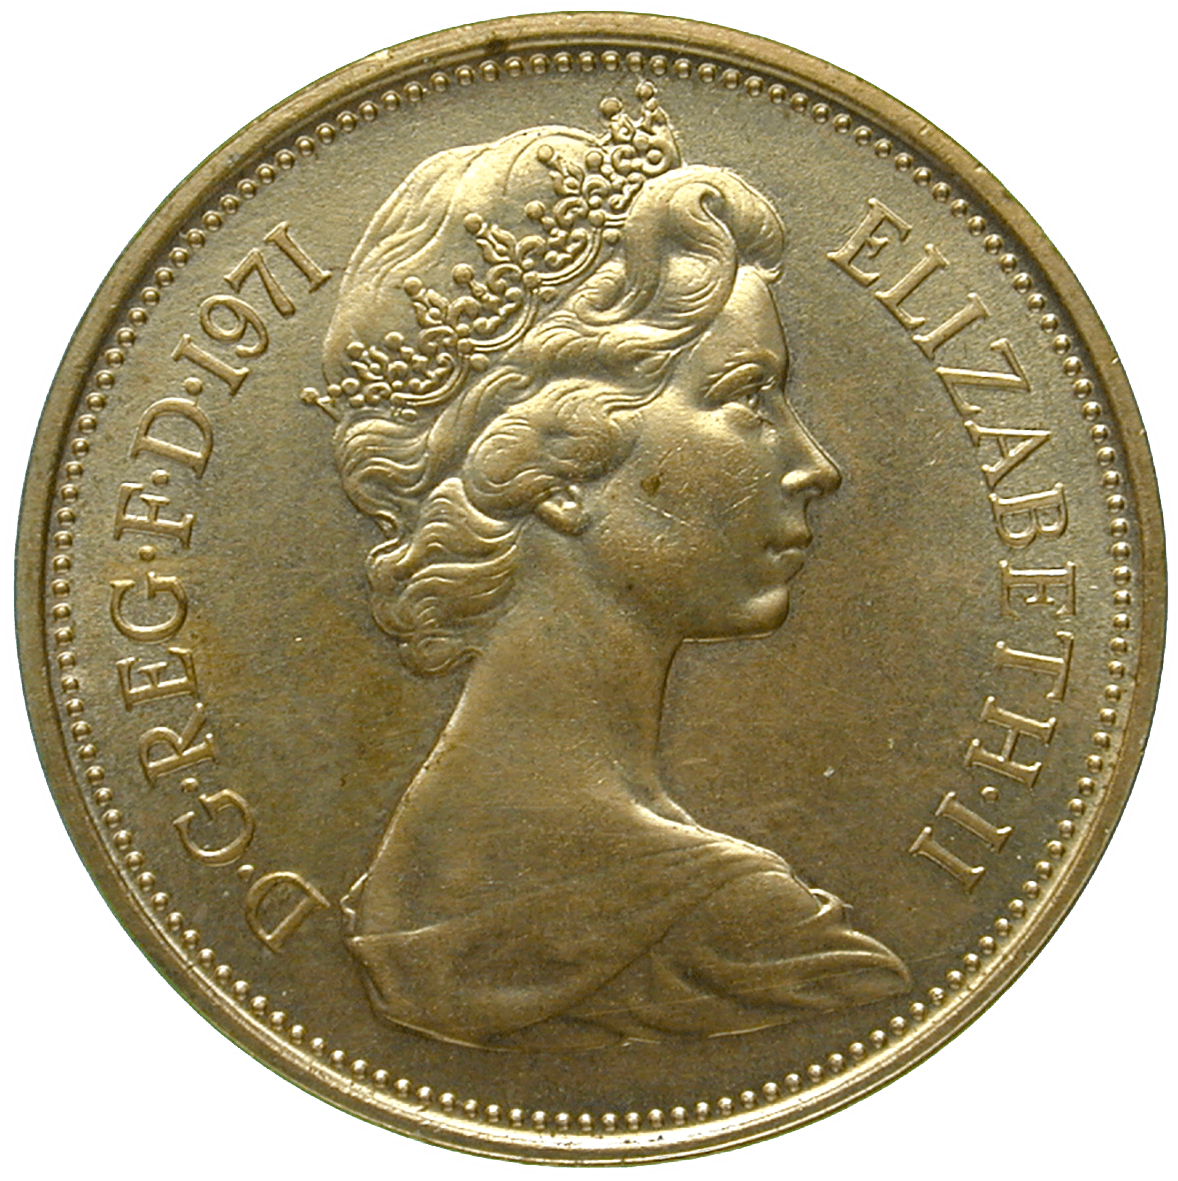 United Kingdom of Great Britain, Elizabeth II, 2 New Pence 1971 (obverse)